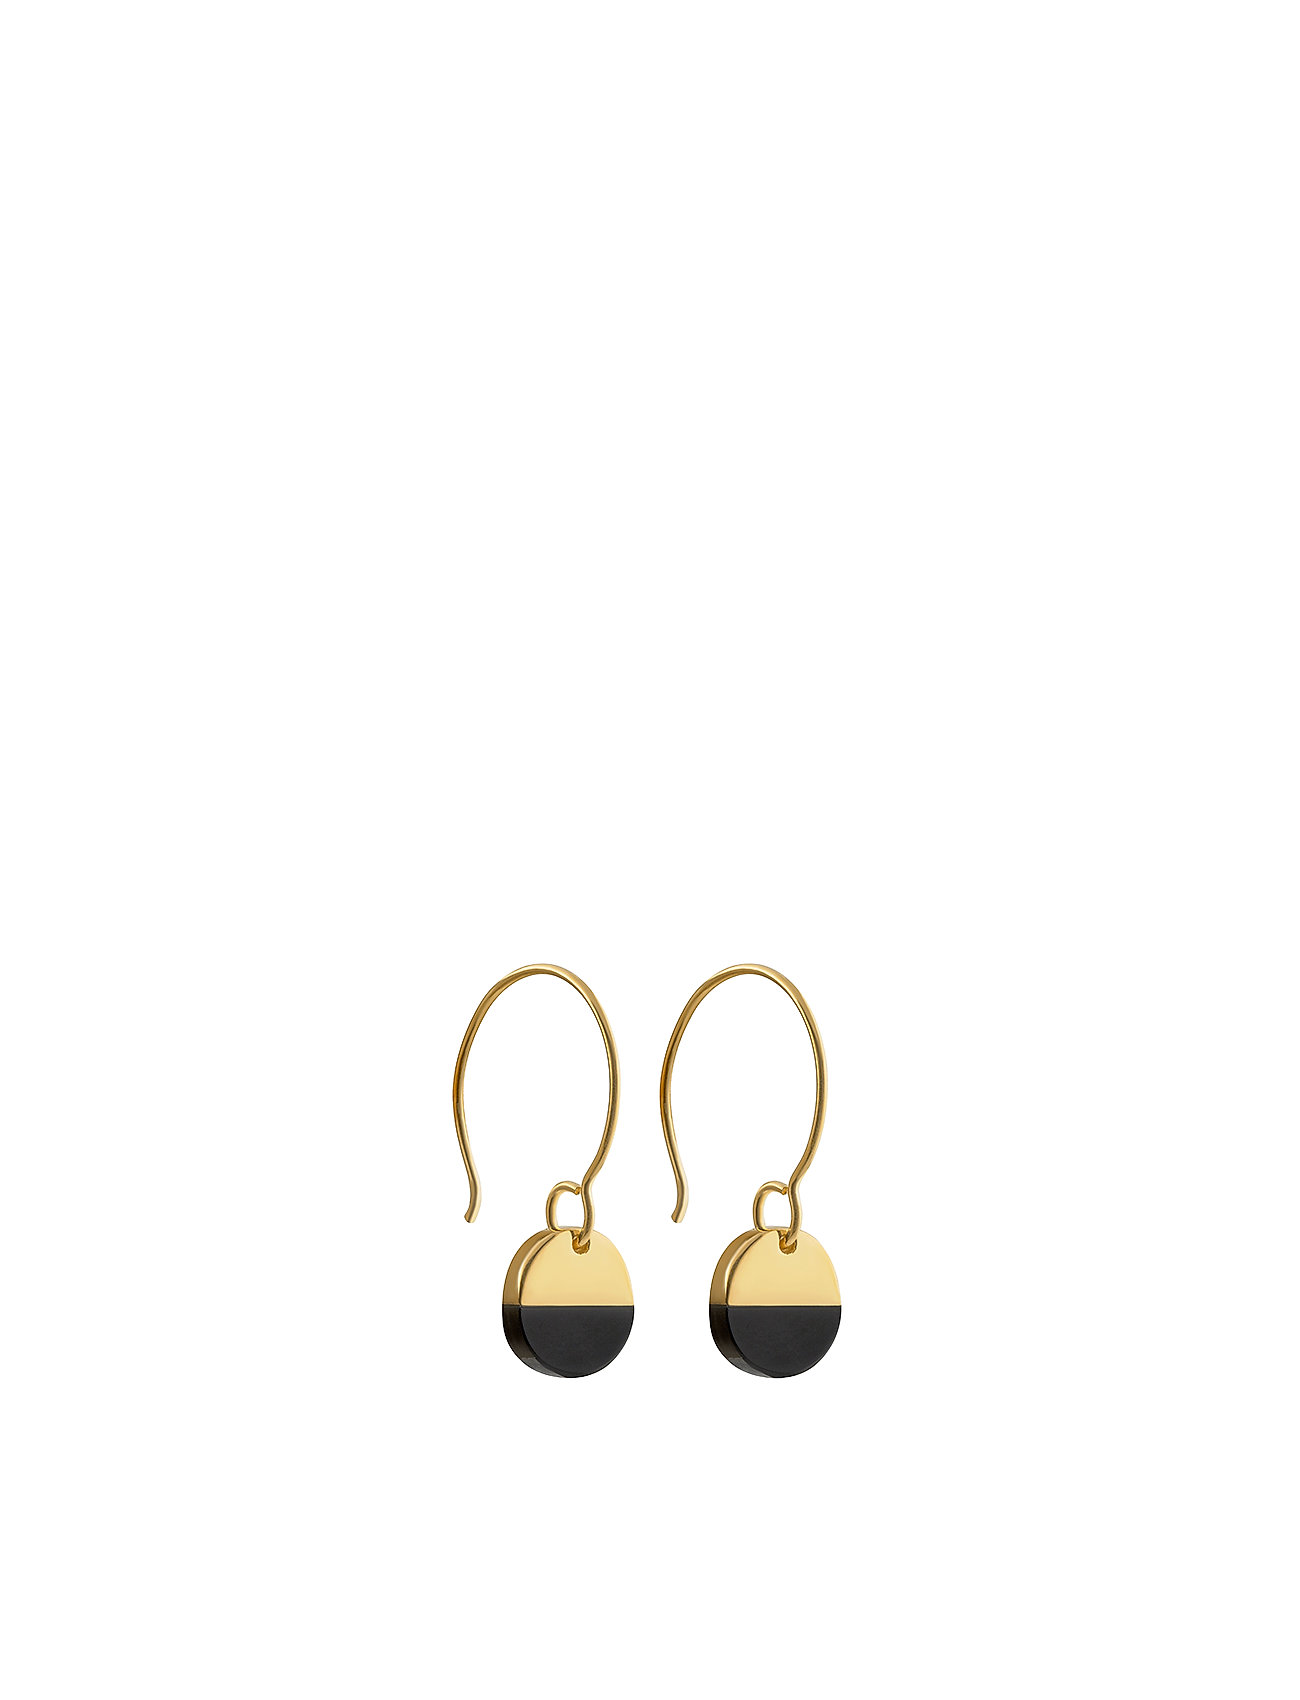 Dixxi Earrings Black Onyx thumbnail